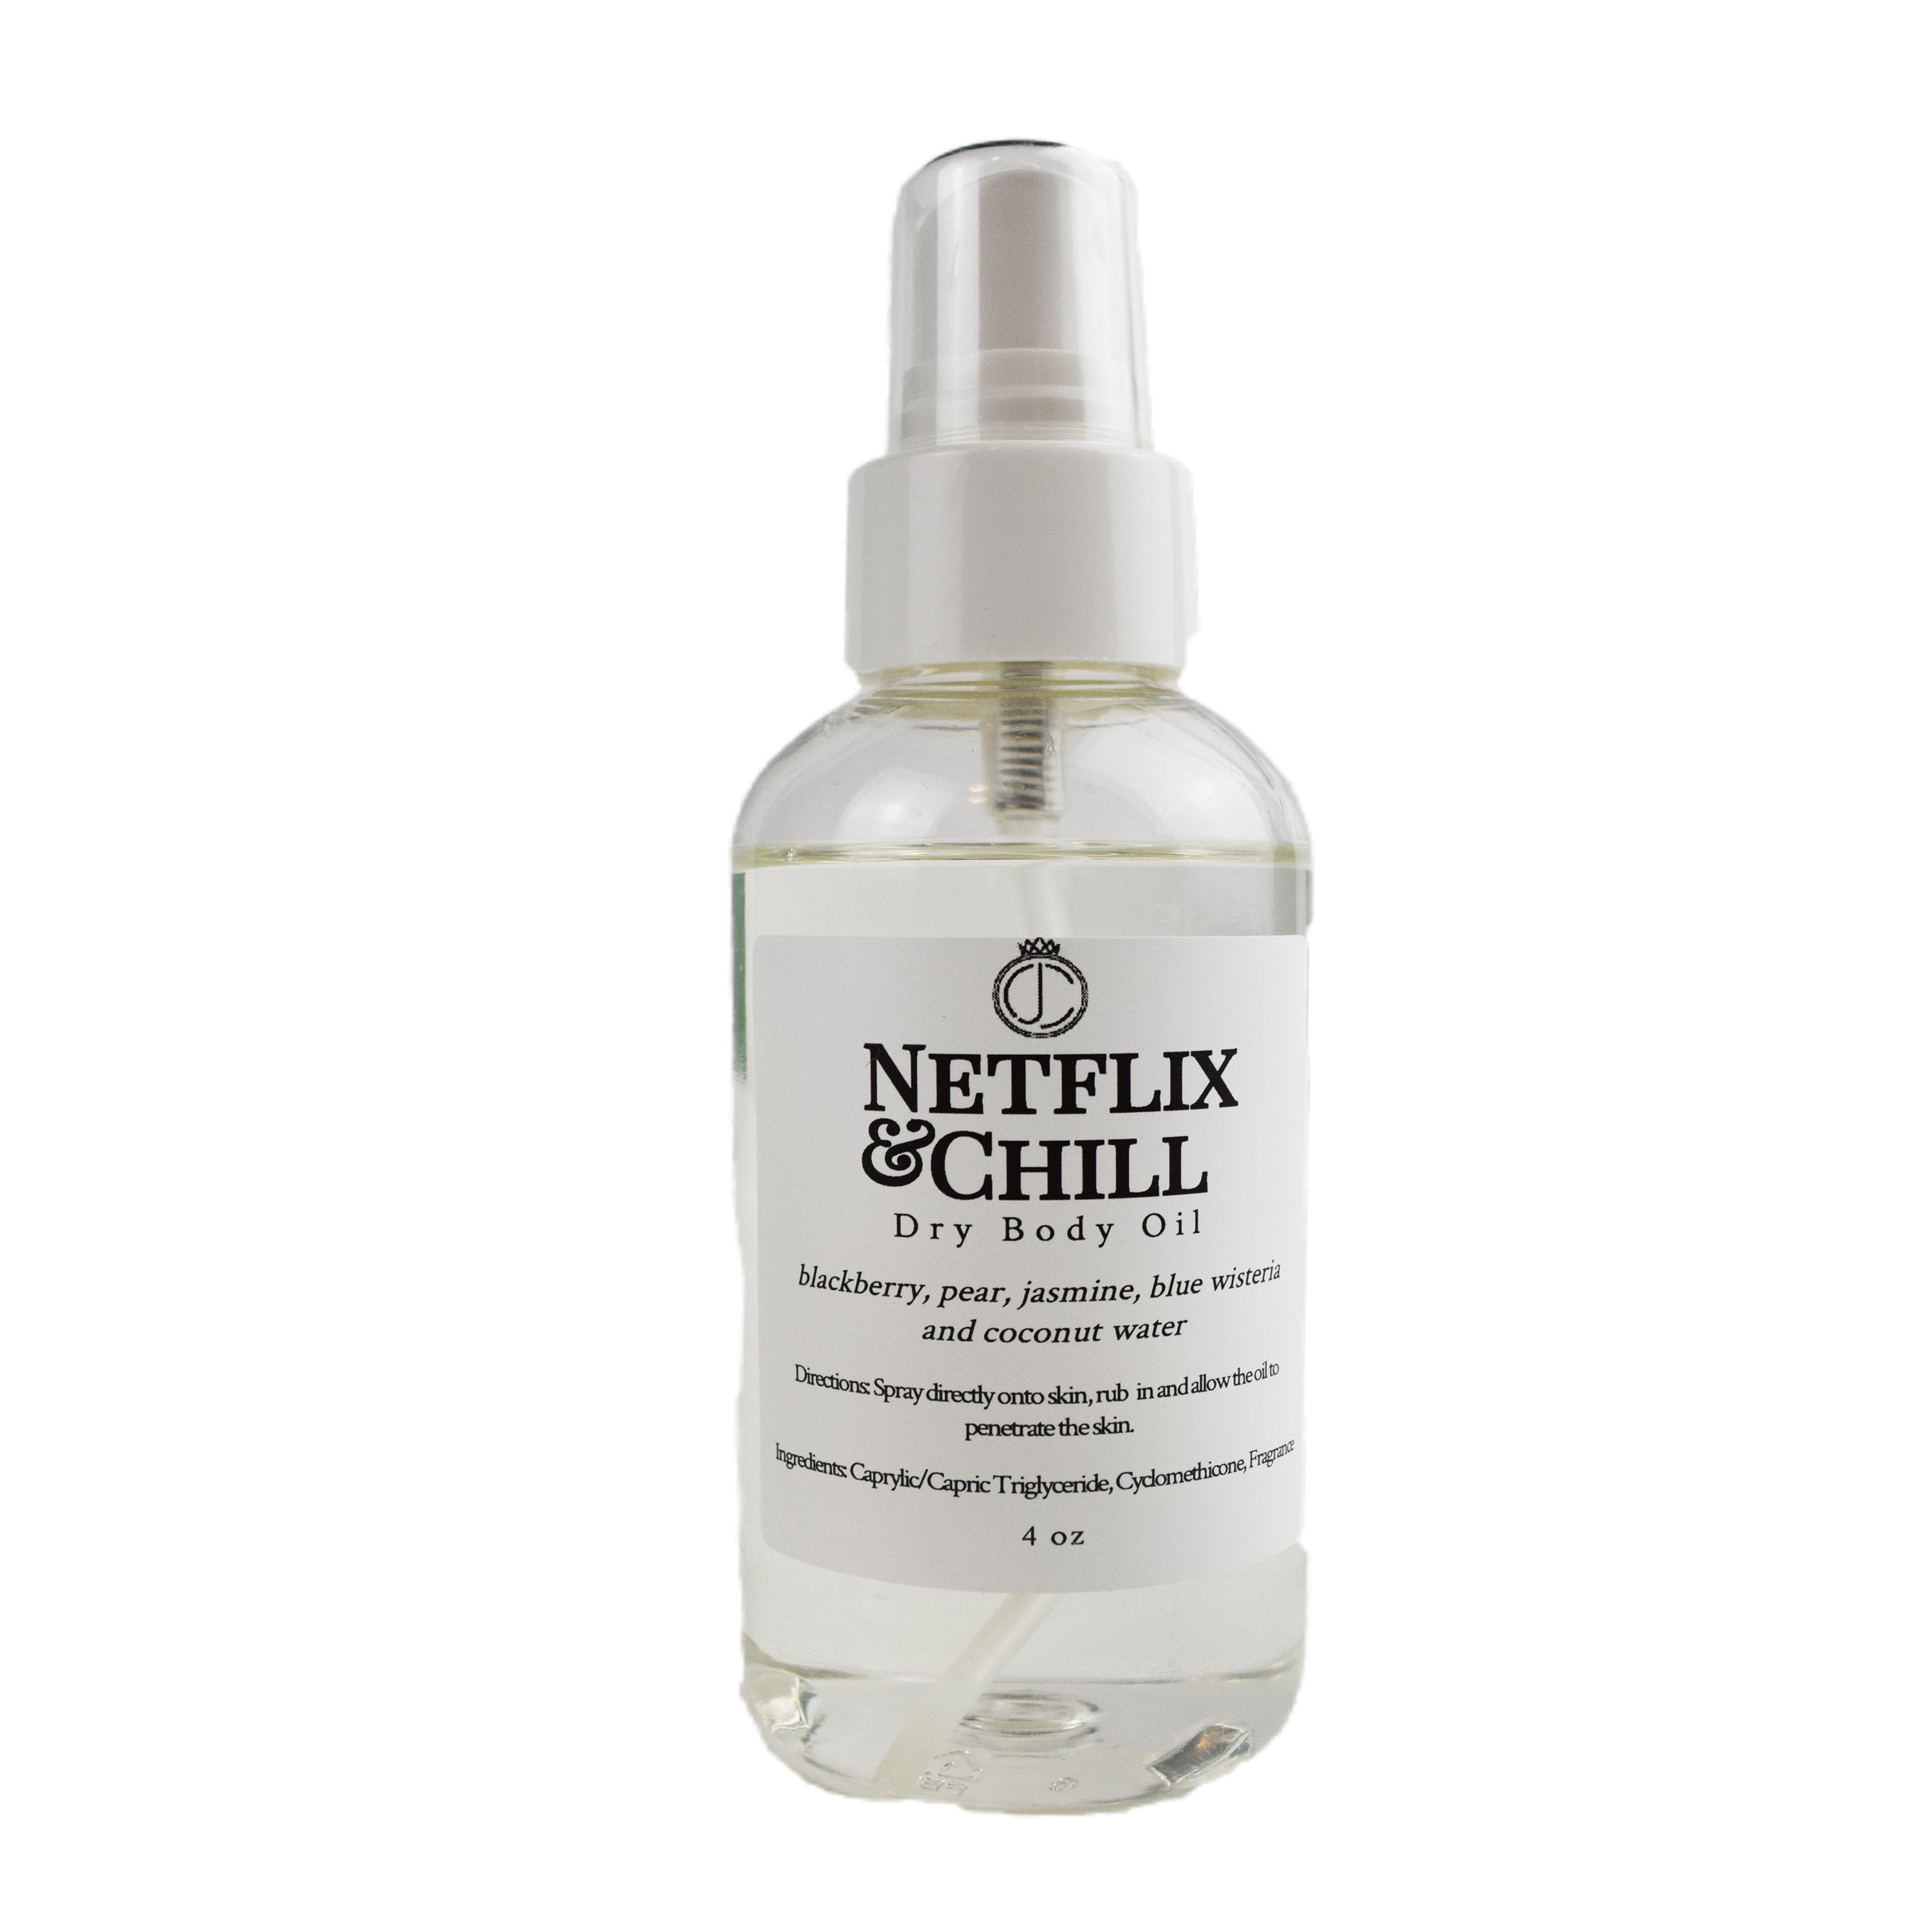 Netflix & Chill │ Limited Edition Dry Body Oil